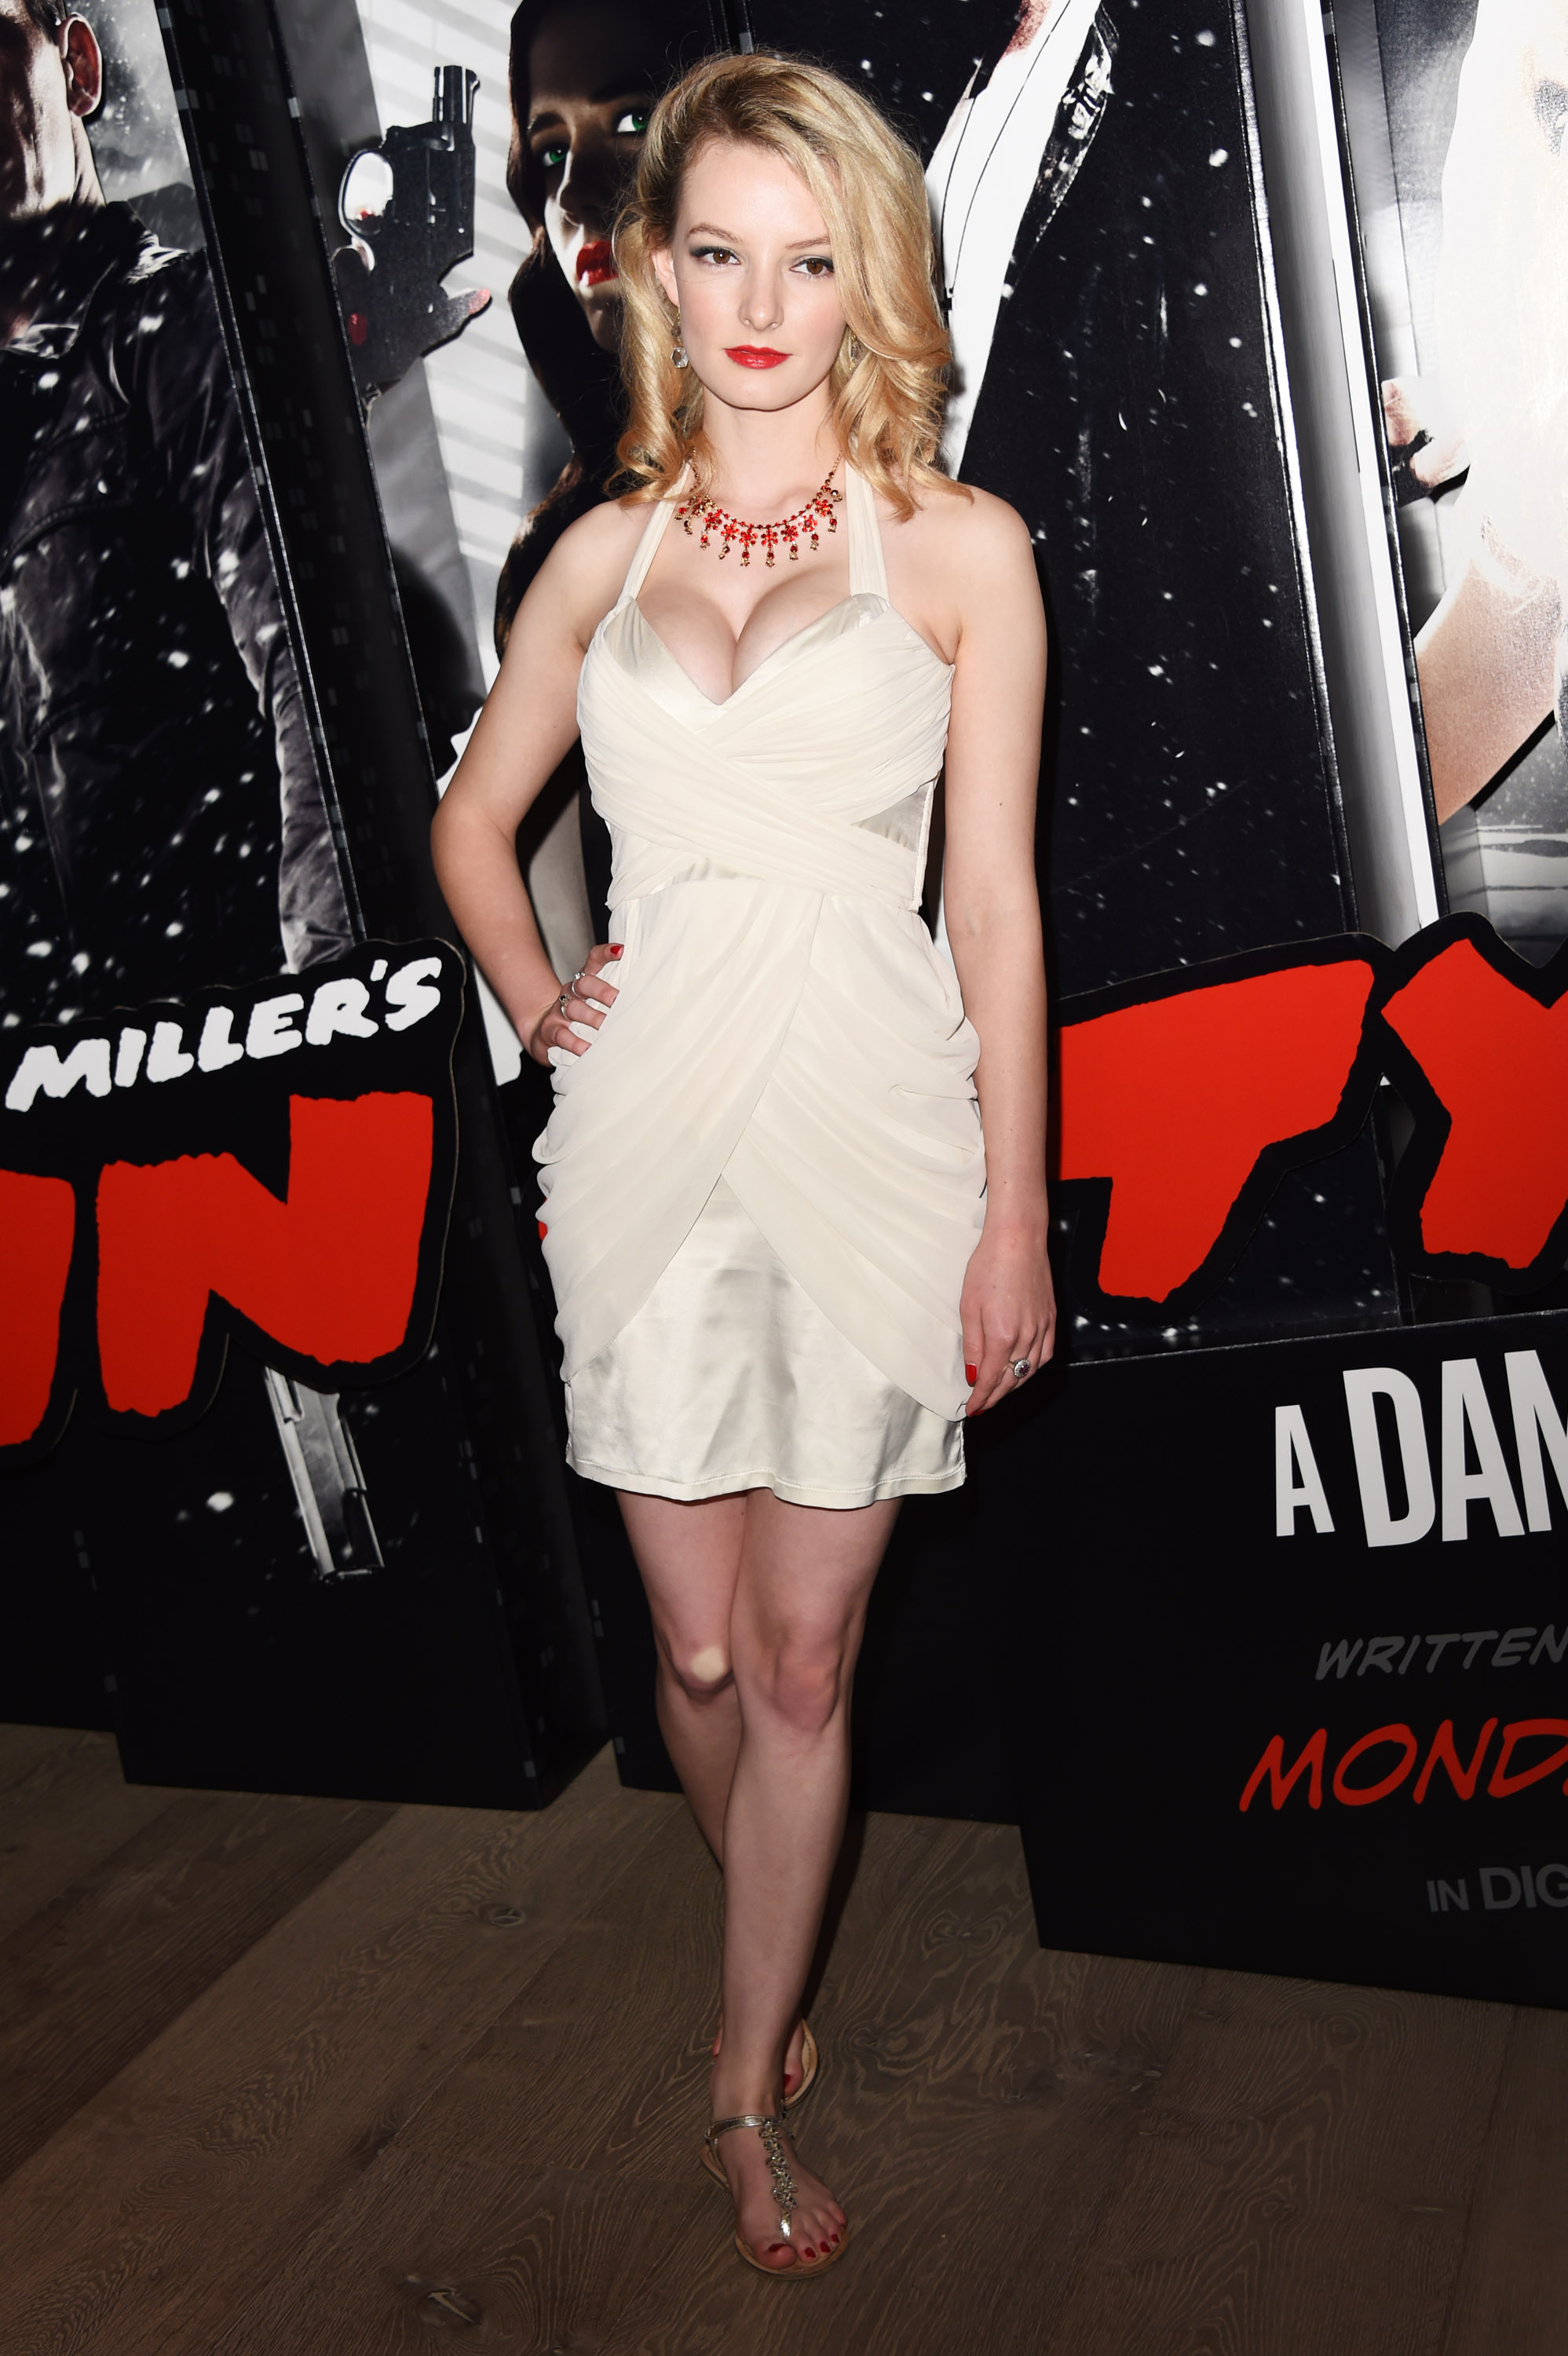 dakota city online dating Despite the fact they have only been dating for a couple of months, dakota johnson and chris martin may be in the wedding planning stage of their relationship an insider told radar online that the coldplay lead singer is ready to take the leap with the 28-year-old actress.